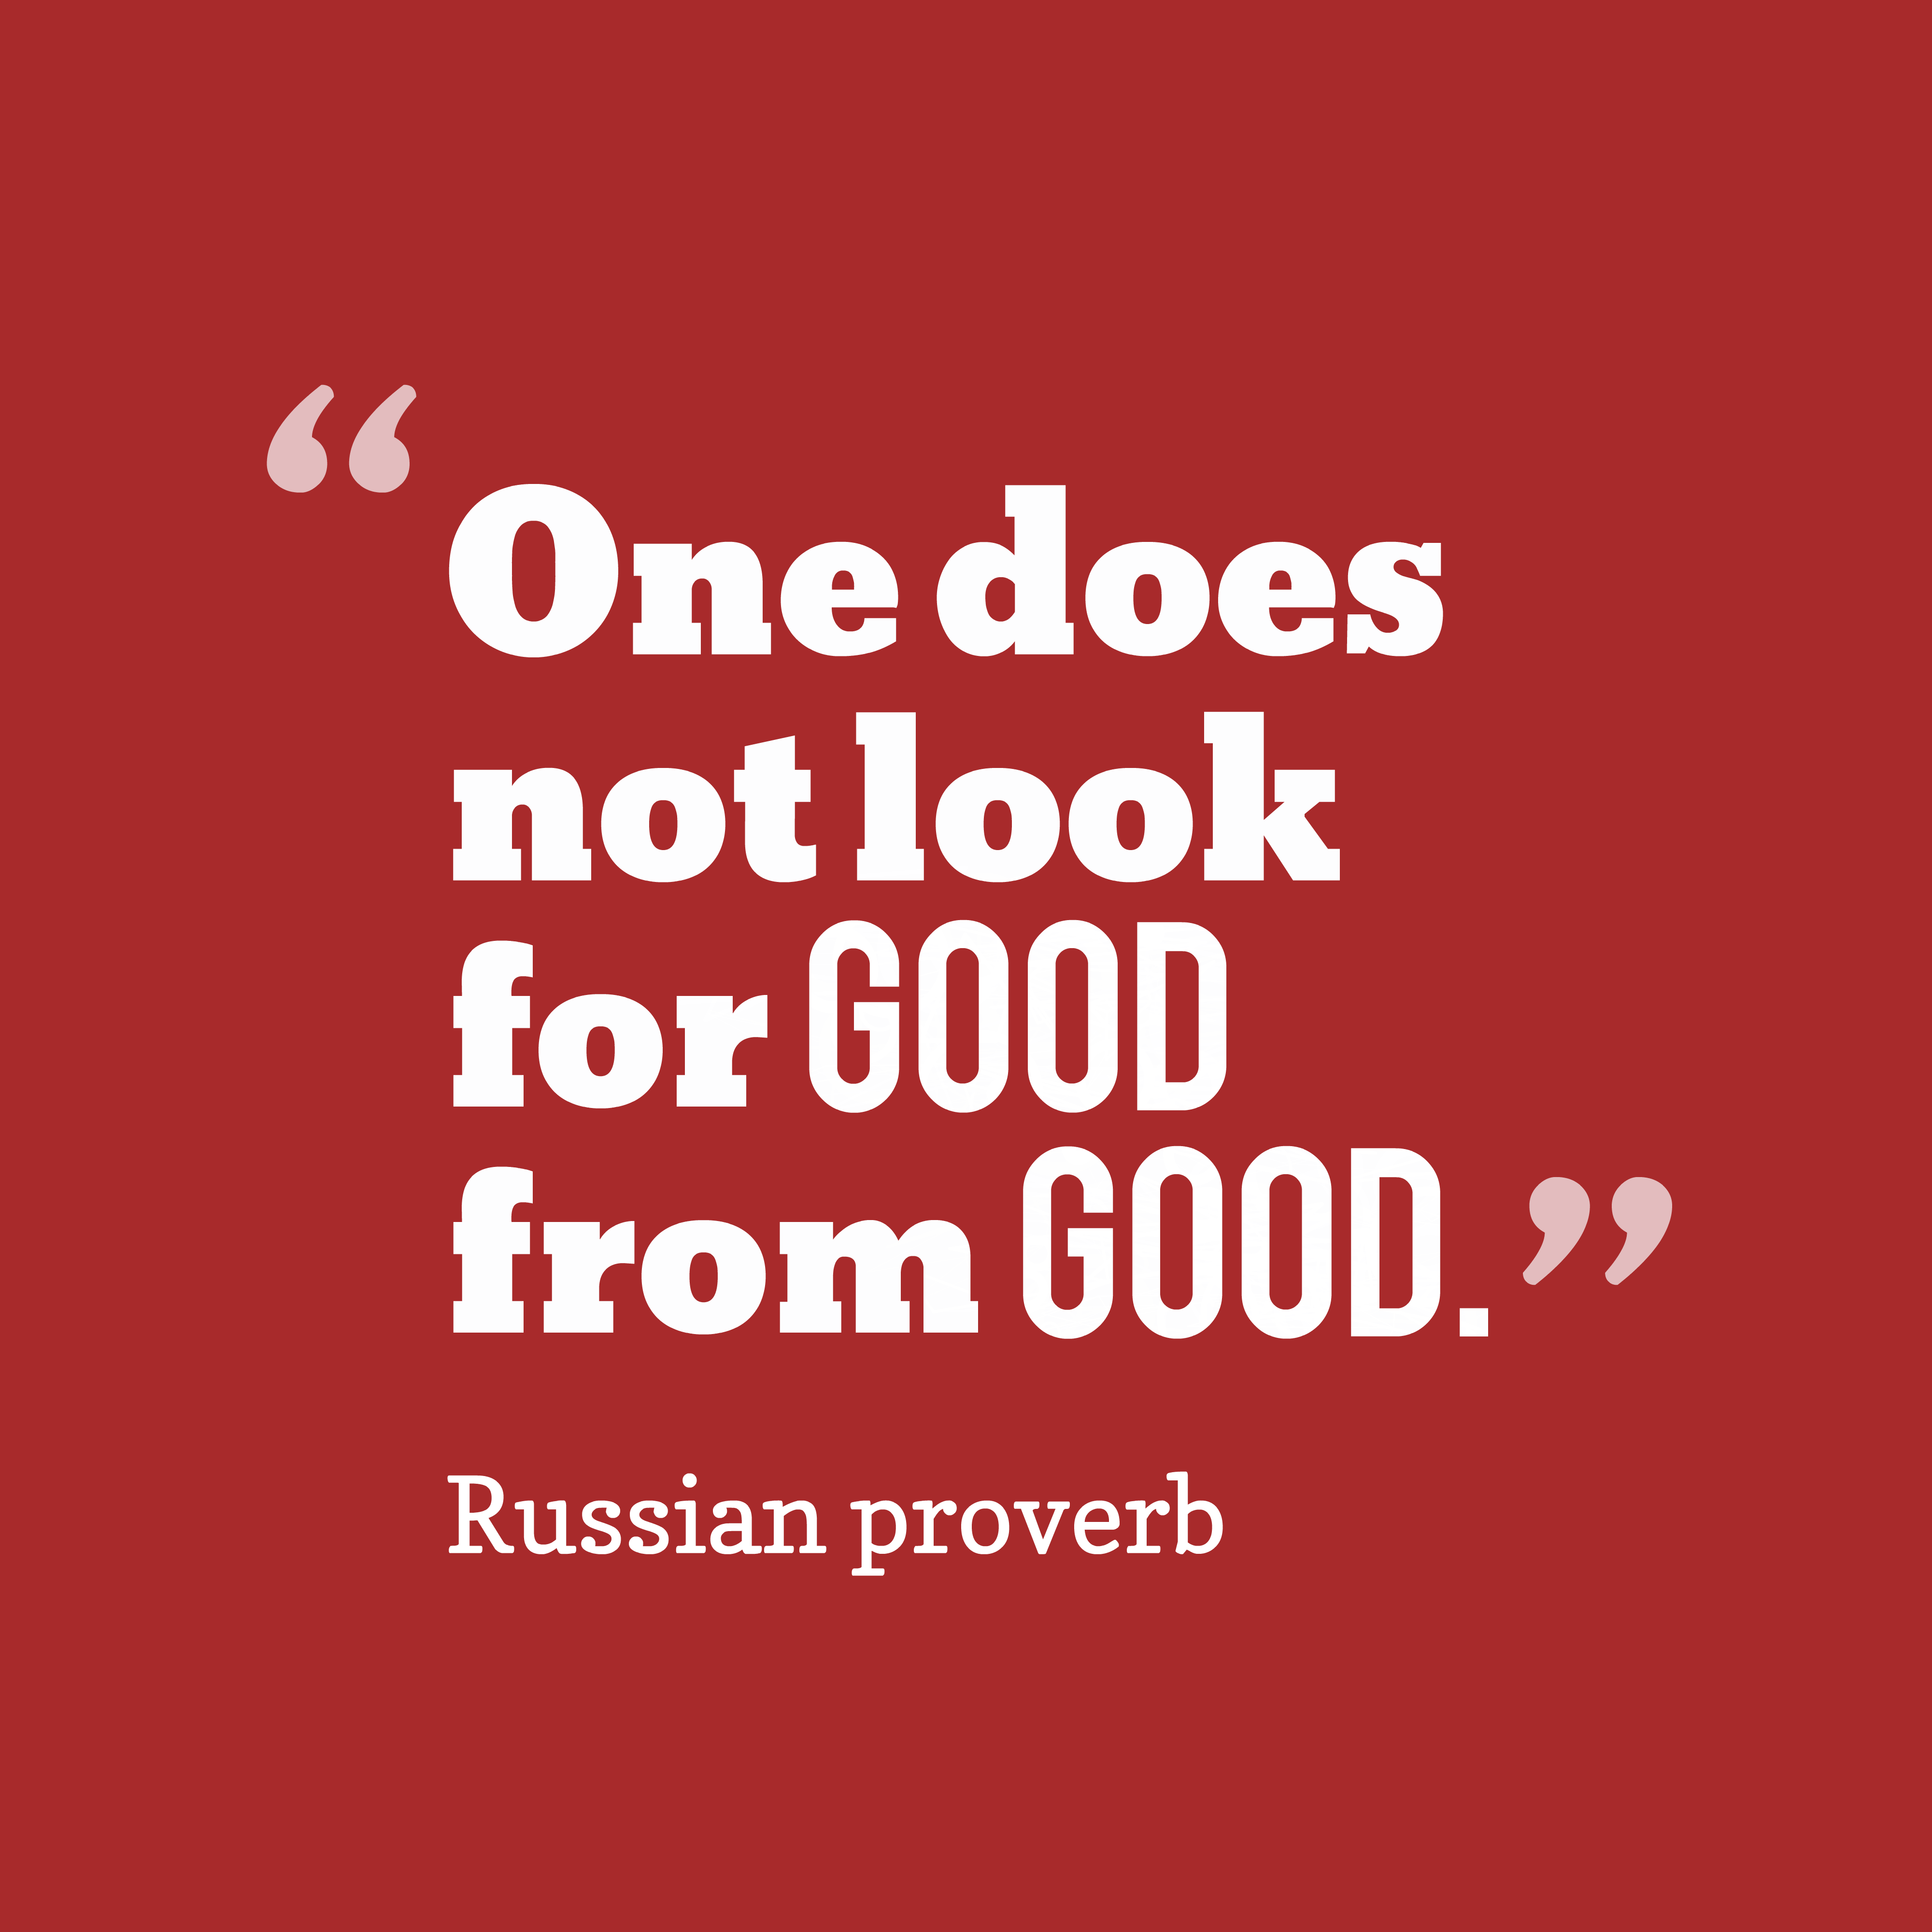 Quotes image of One does not look for good from good.